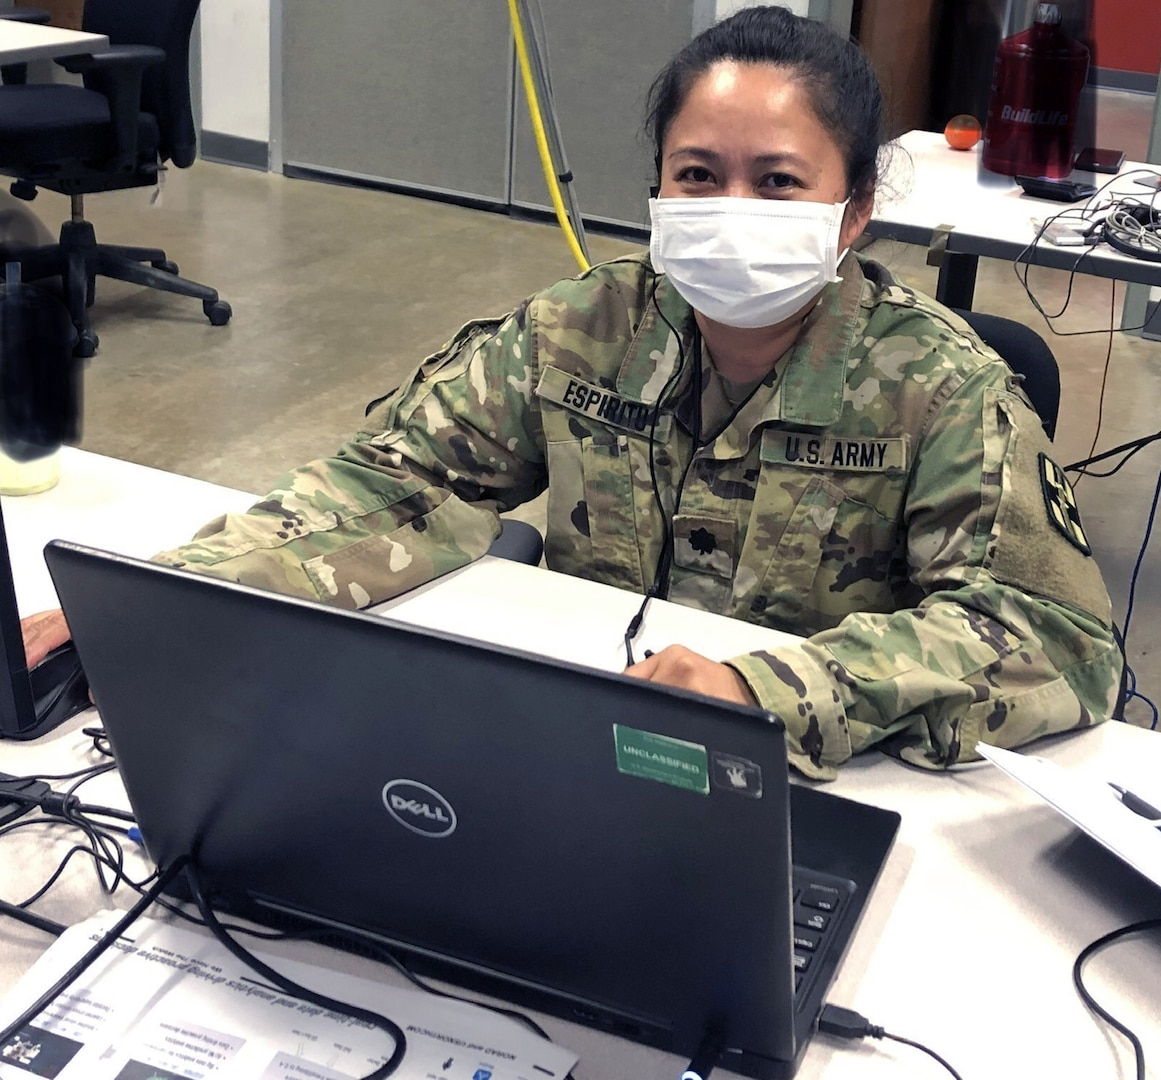 Lt. Col. Maria Espiritu, a clinical laboratory officer, works at Joint Base San Antonio-Fort Sam Houston April 20 in support of the Department of Defense COVID-19 Response mission. Espiritu provides guidance to multiple clinical laboratories in the U.S. that provide testing for military medical professionals mobilized to support areas heavily impacted by COVID-19.